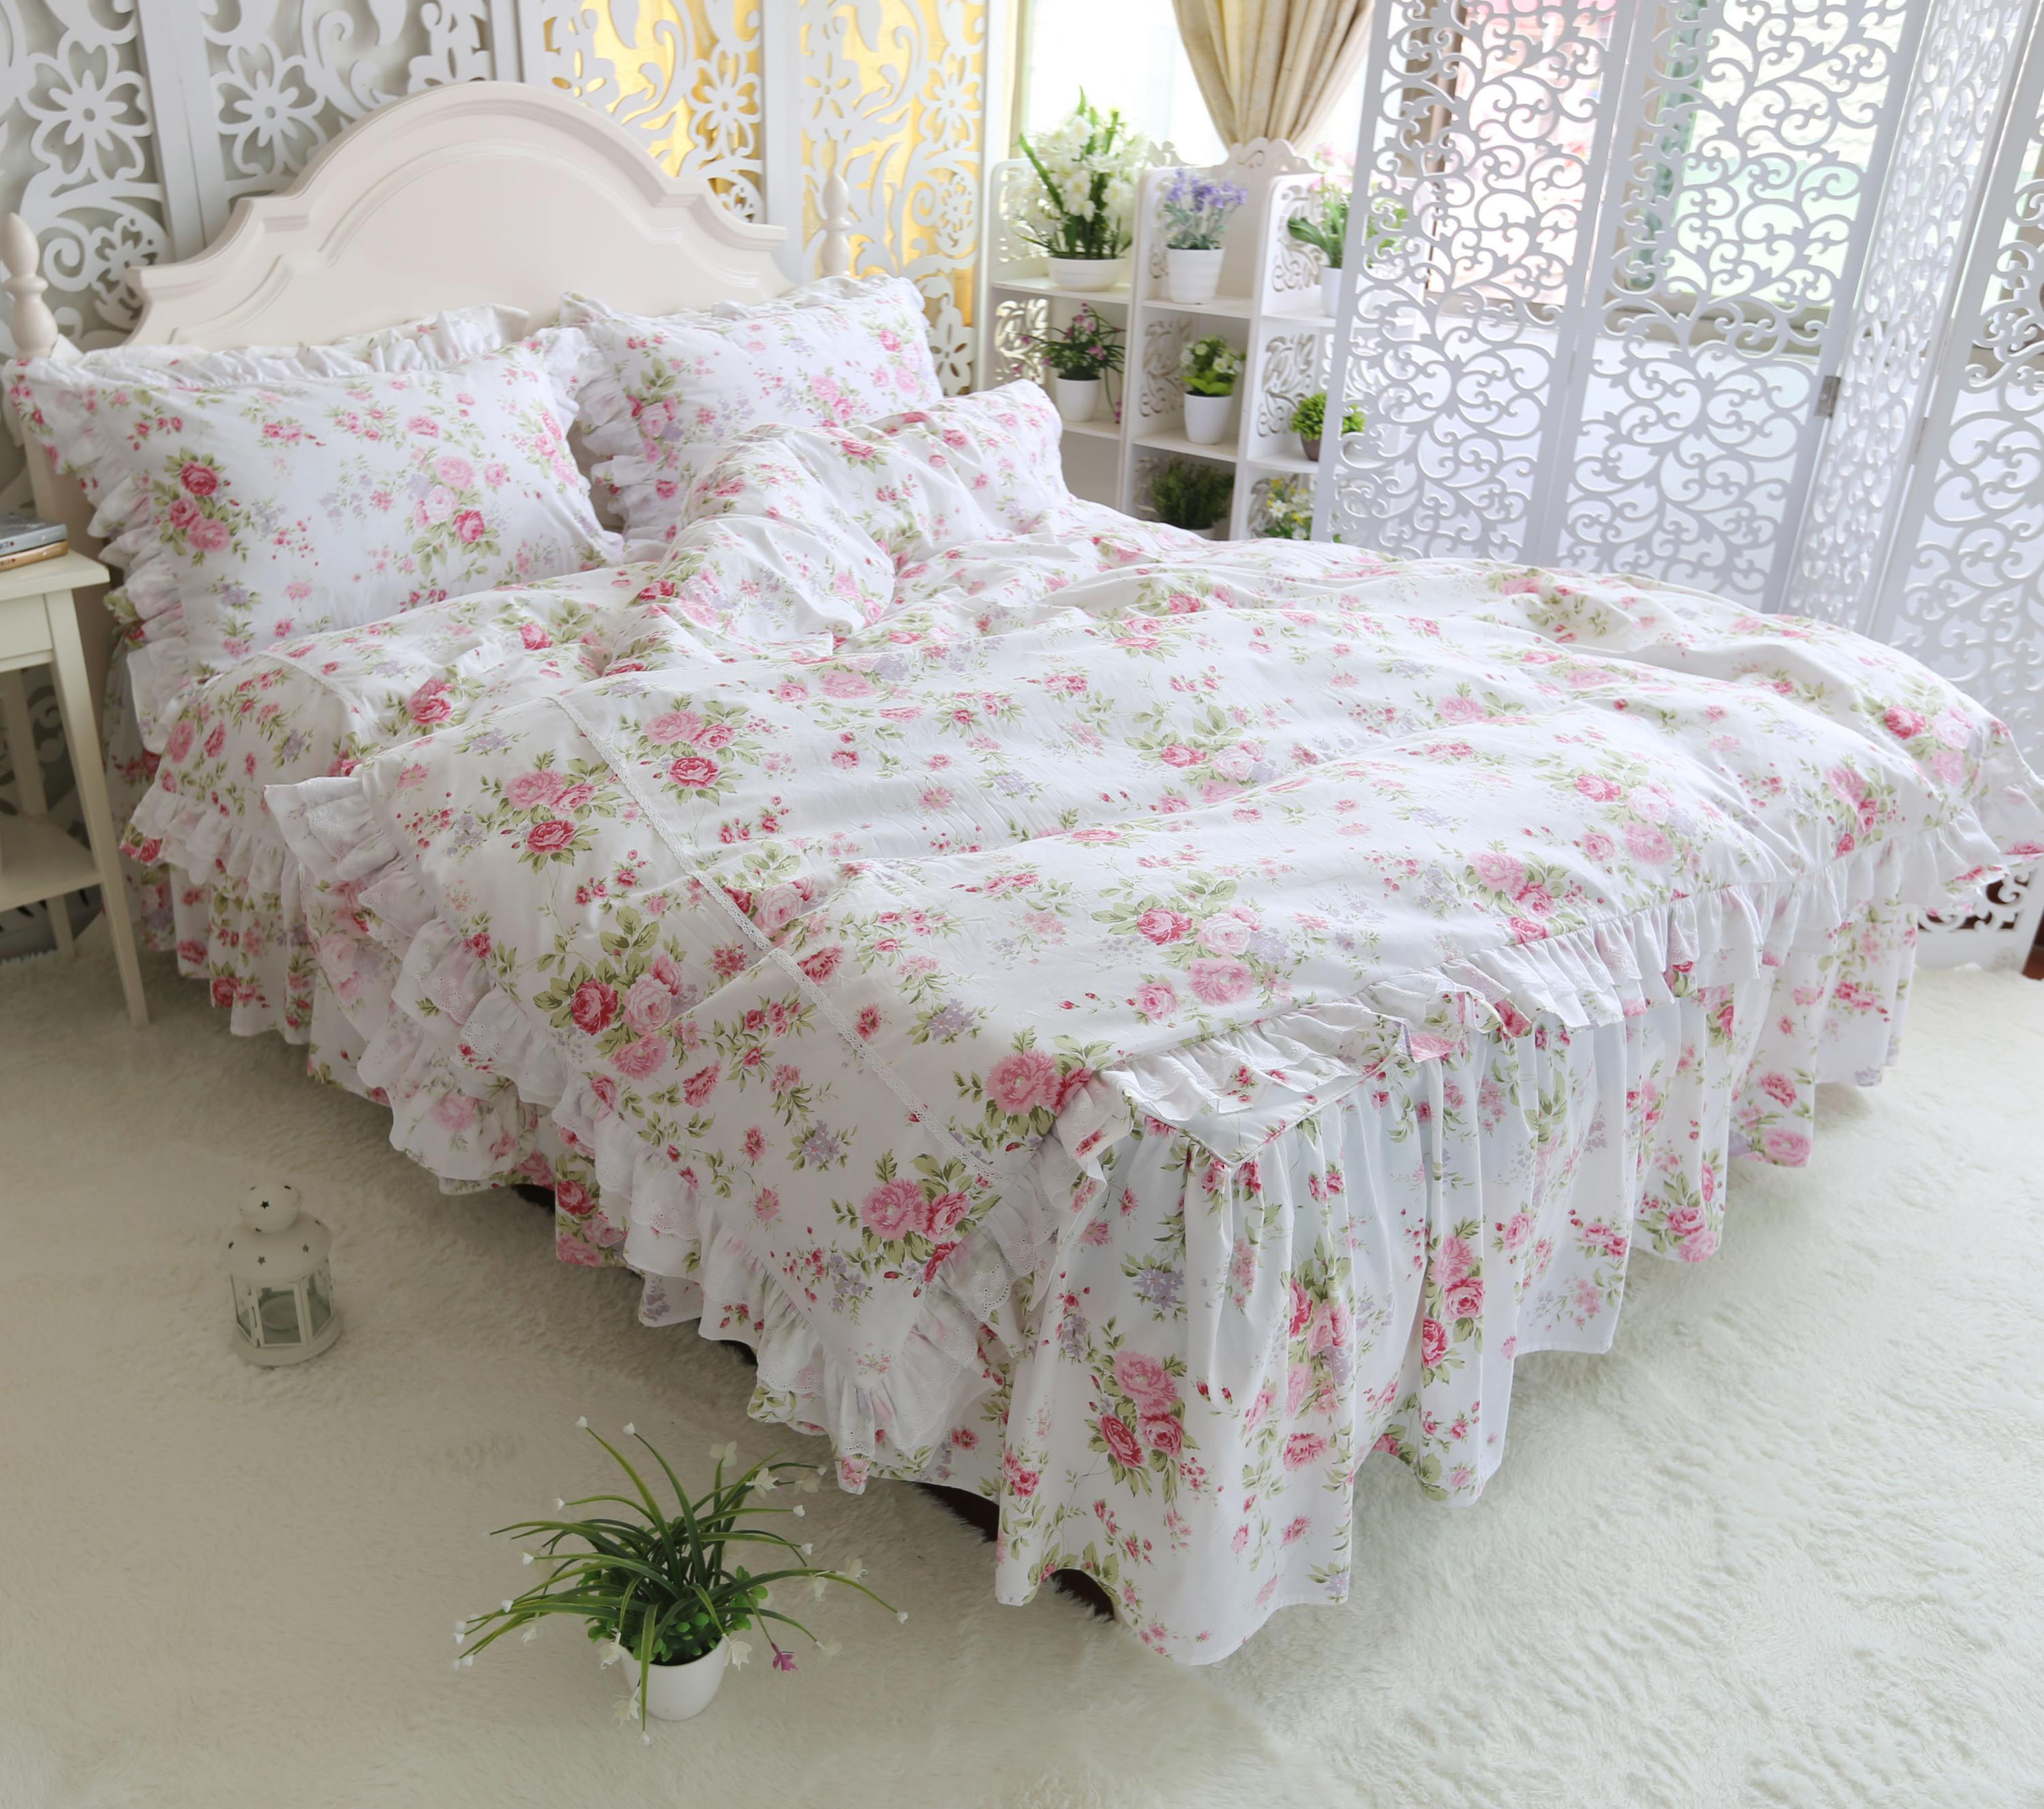 Ruffles Floral Princess Bedding Set 4 Pieces White Colorful Flowers Duvet Cover Bedskirt Set 100%Cotton Ultra Soft All Season